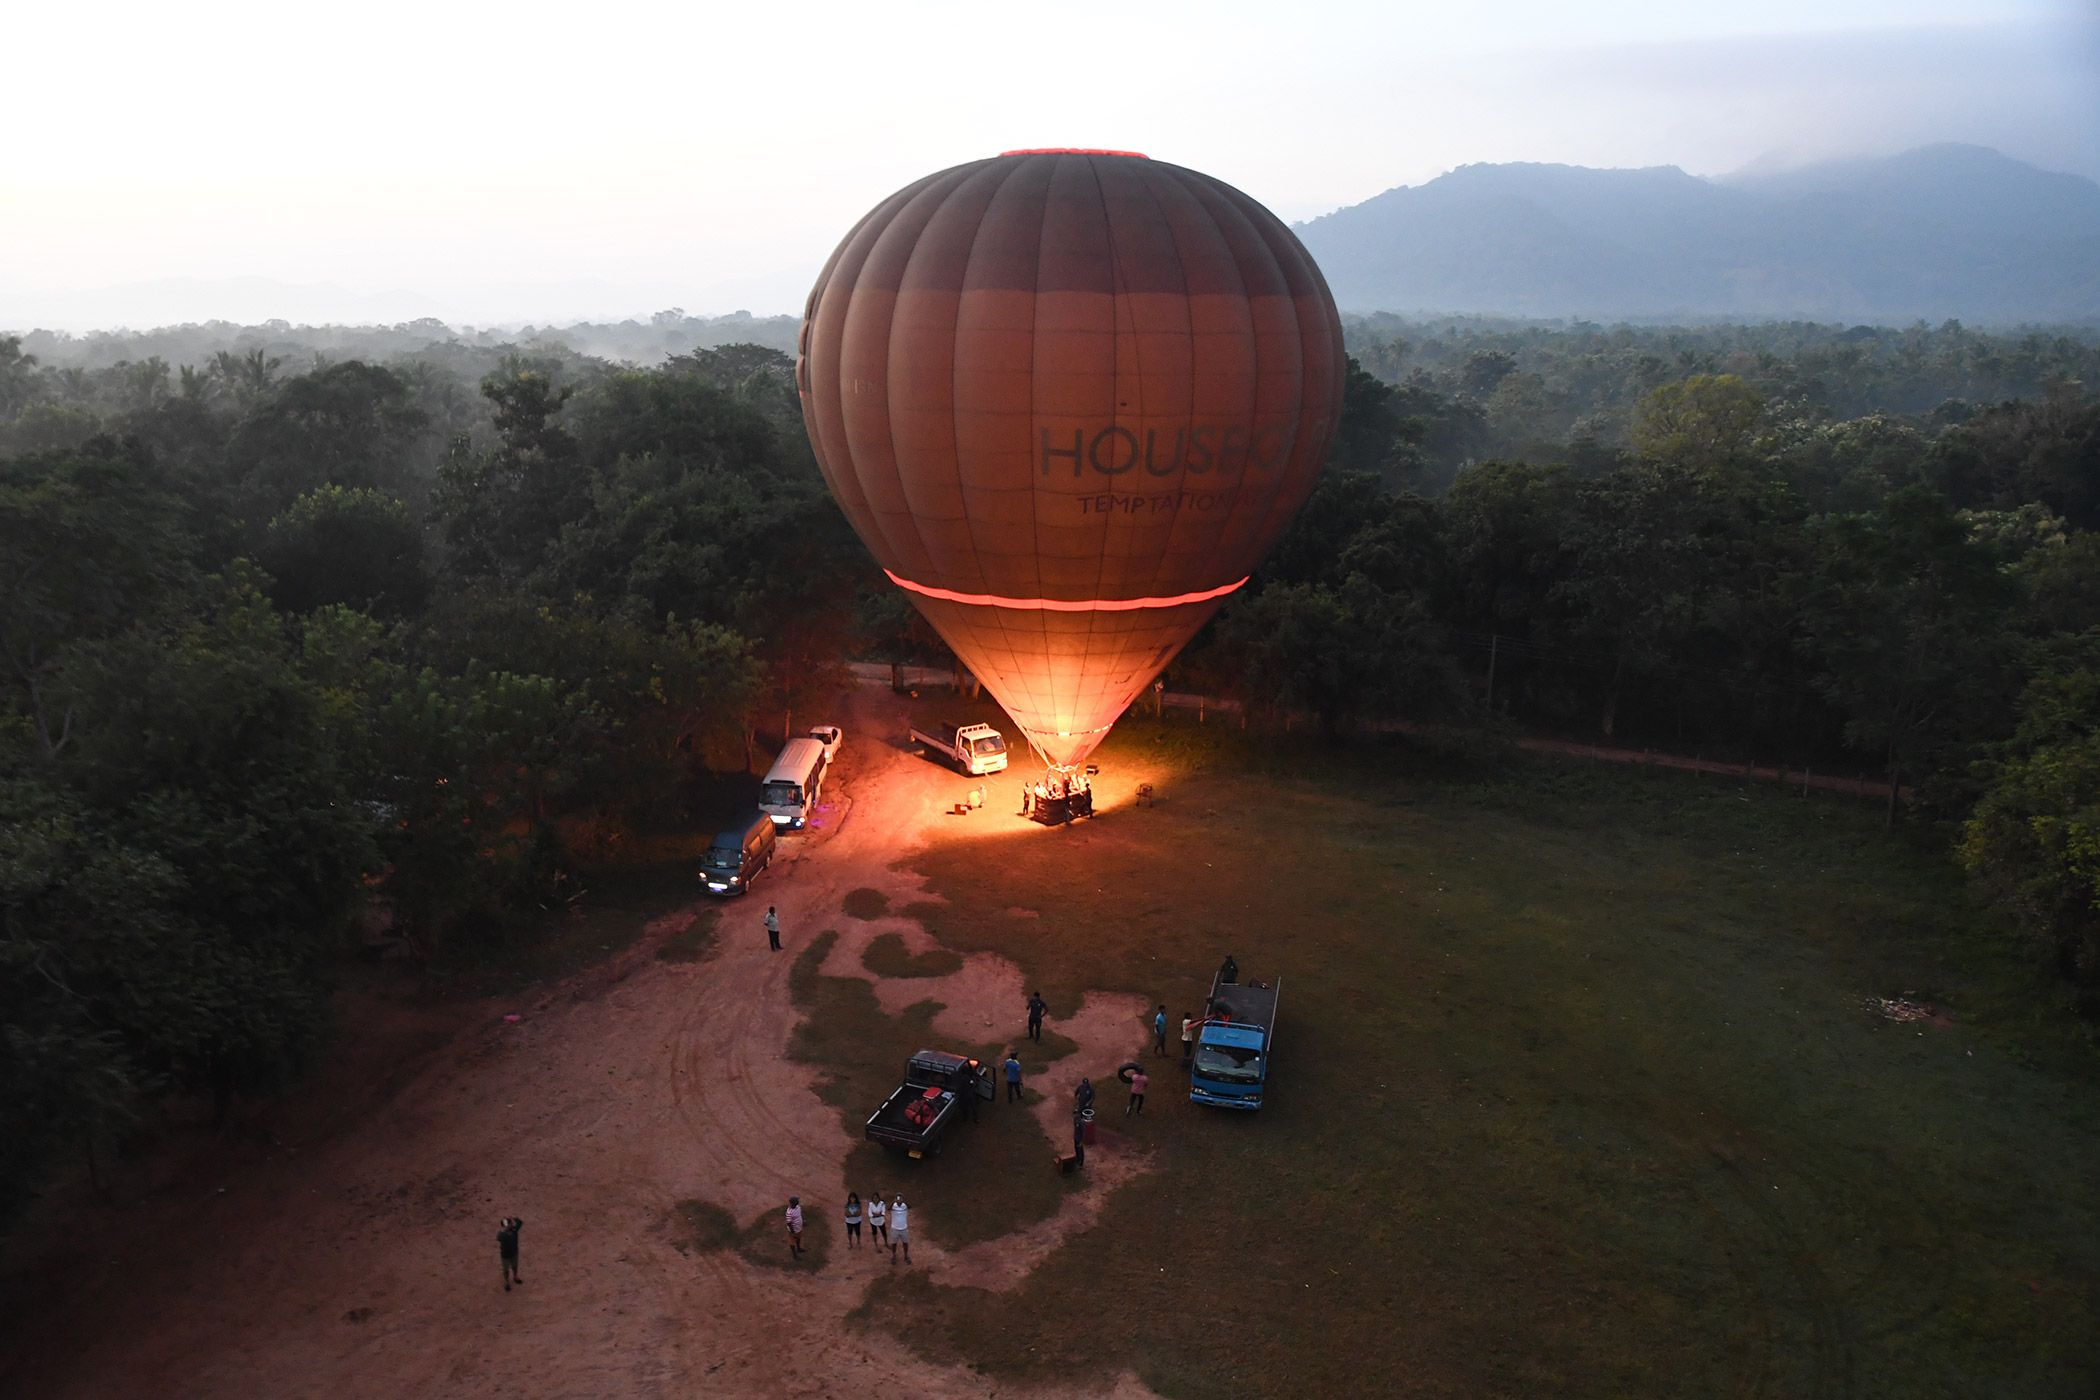 SRI LANKA - BALLOON